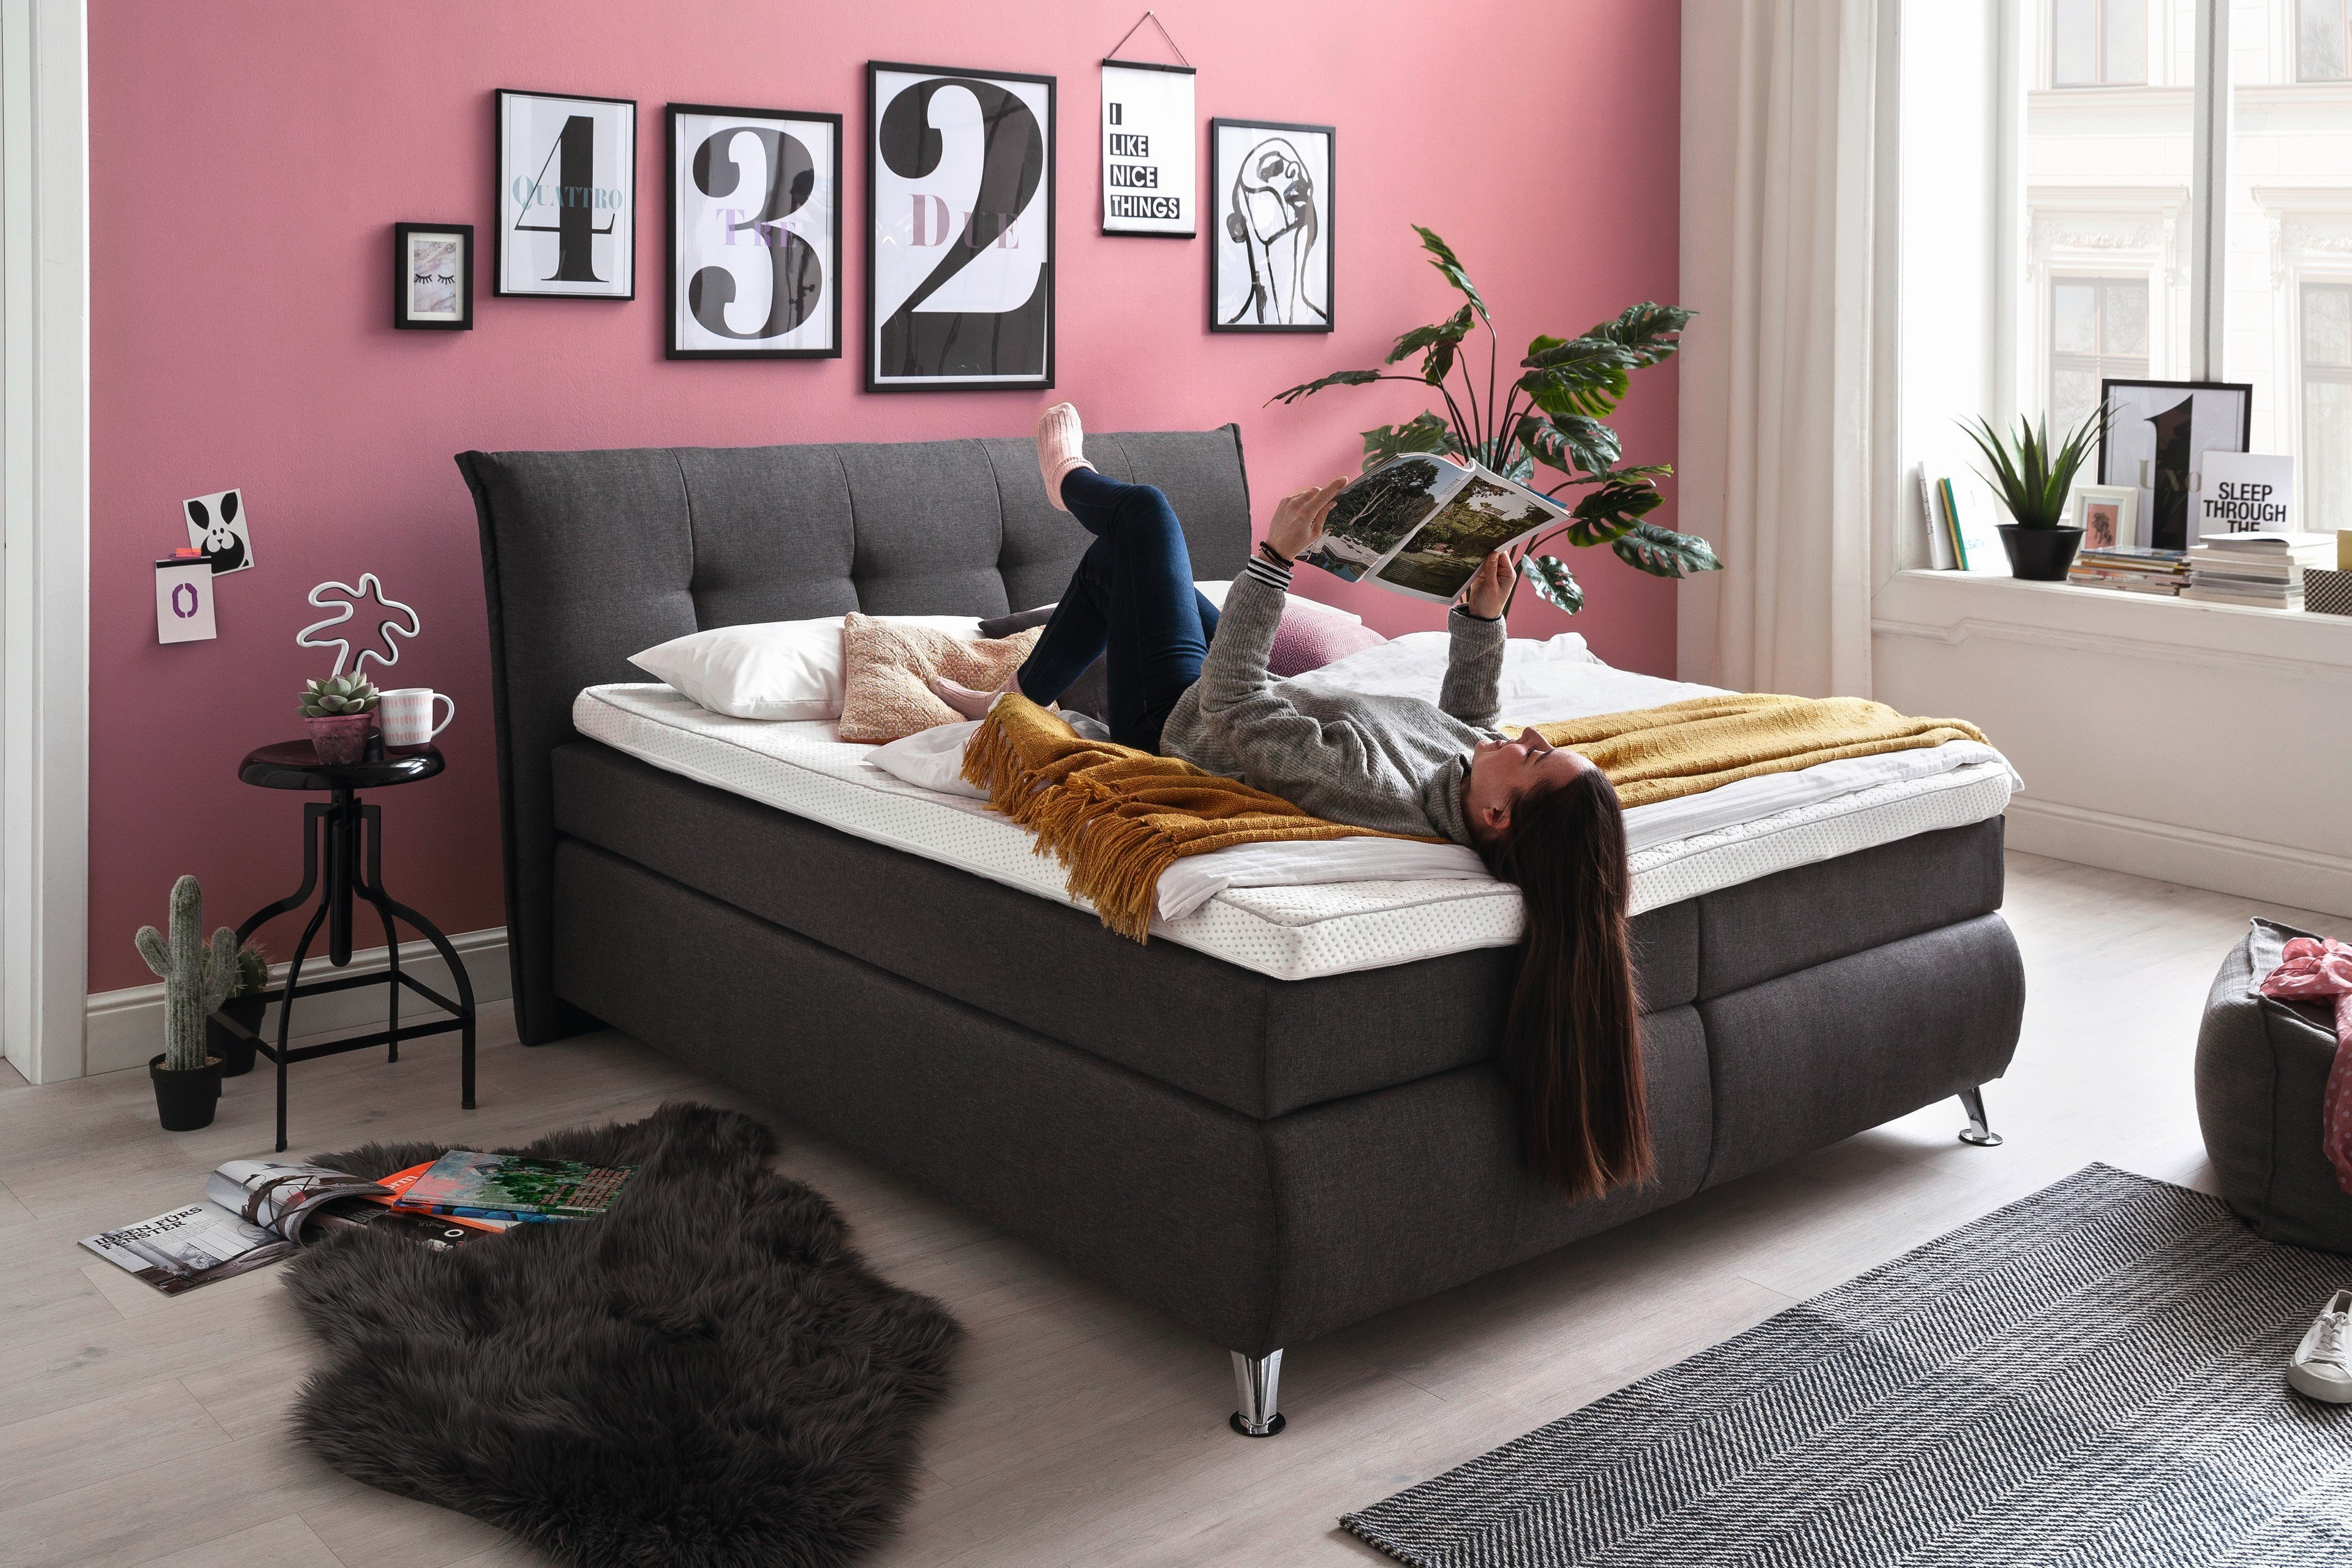 hapo lexos boxspringbett in anthrazit m bel letz ihr online shop. Black Bedroom Furniture Sets. Home Design Ideas